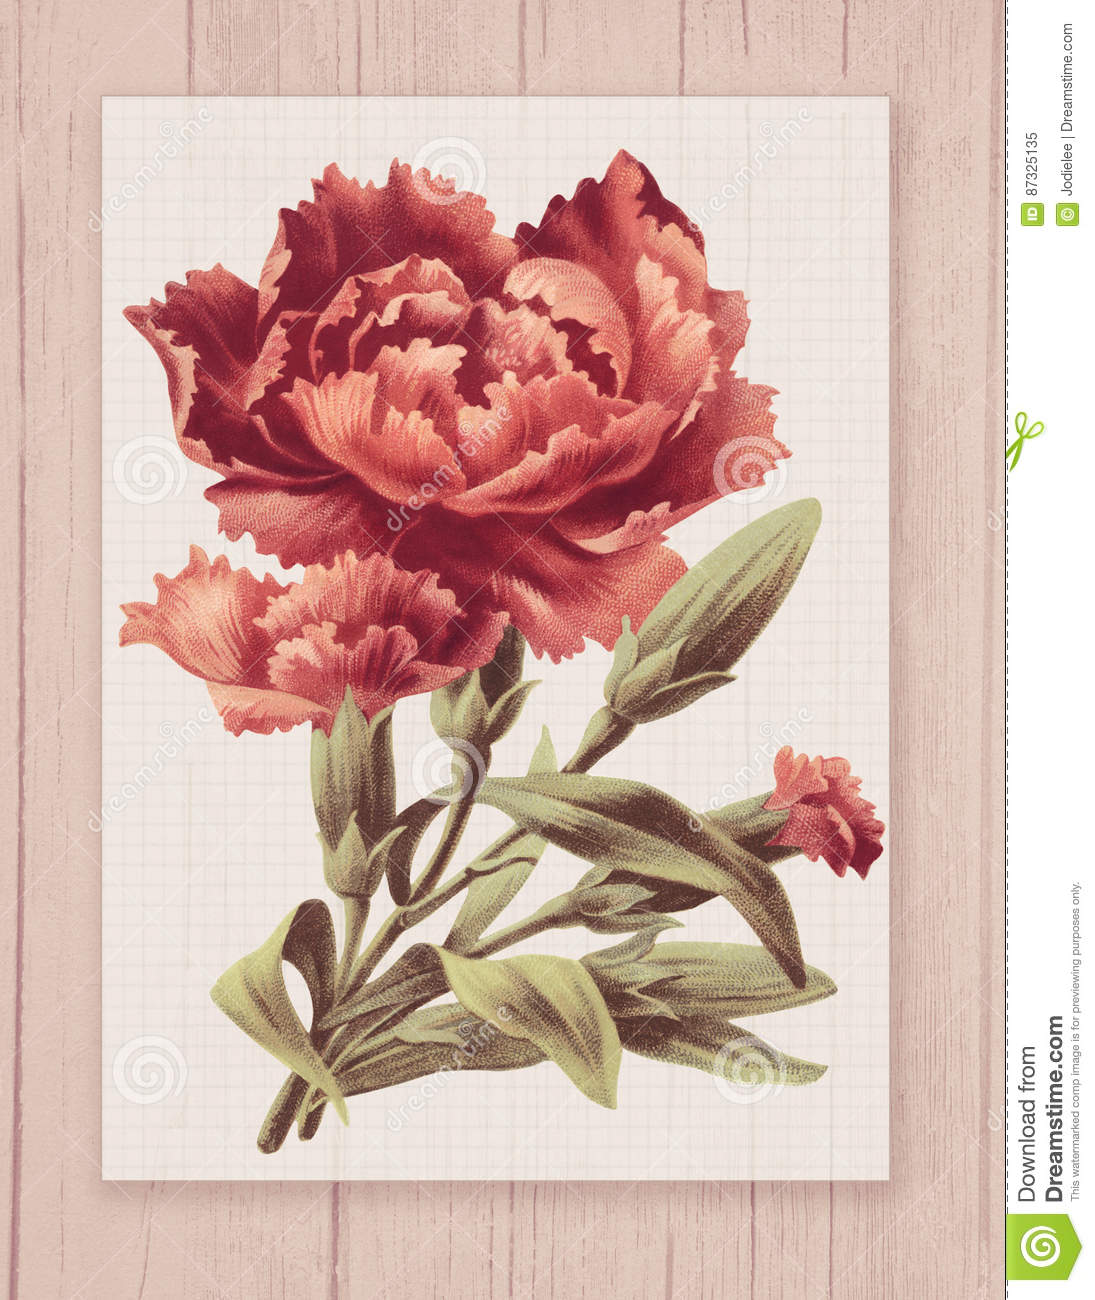 Printable Vintage Shabby Chic Style Flower On Wood Textured